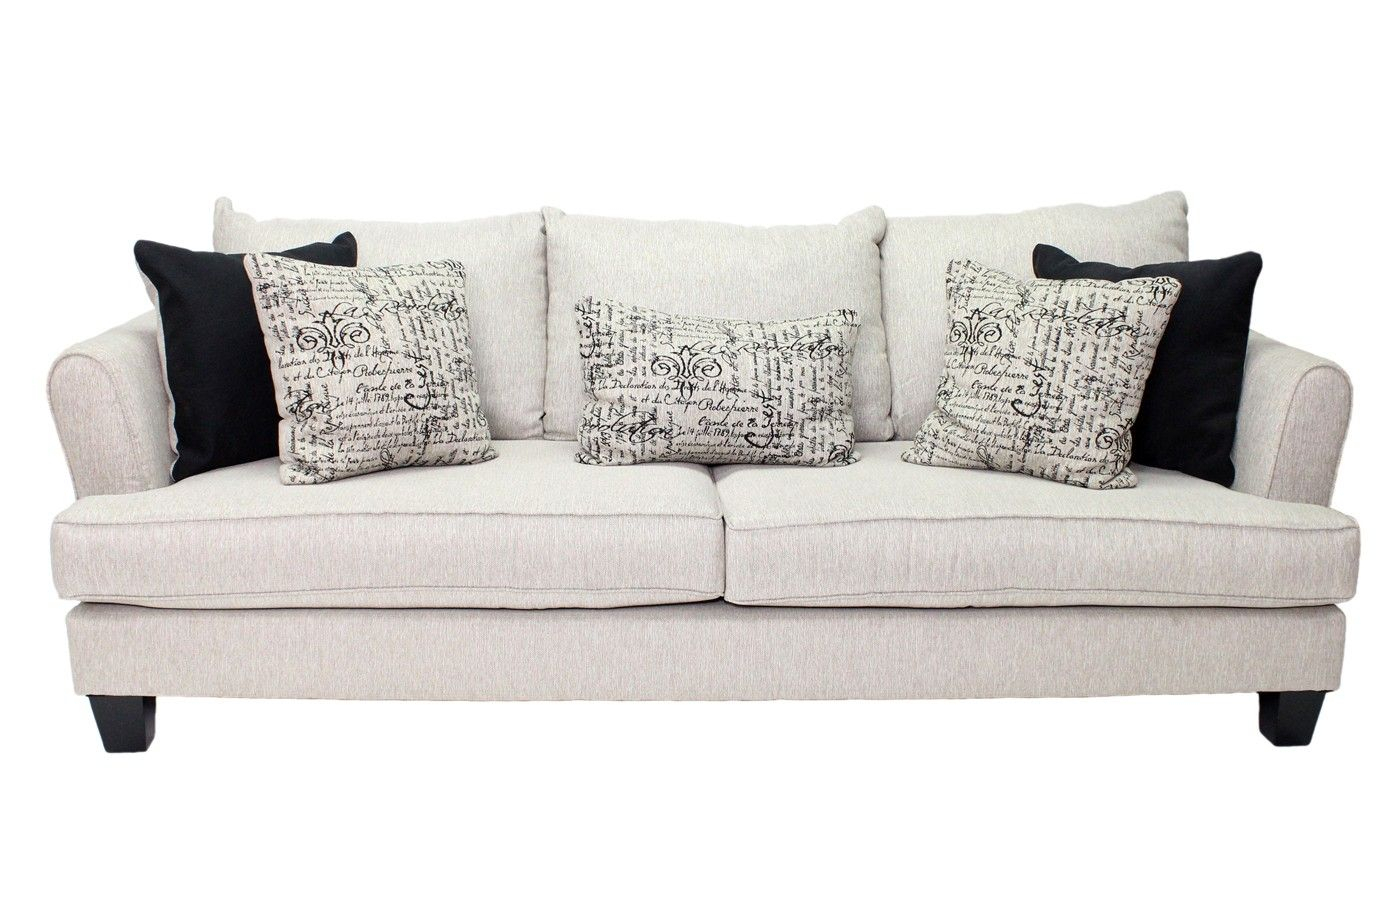 Mor Furniture For Less | Rachael Omega Mist Sofa – Sofas – Sofas In Escondido Sofa Chairs (Image 16 of 25)